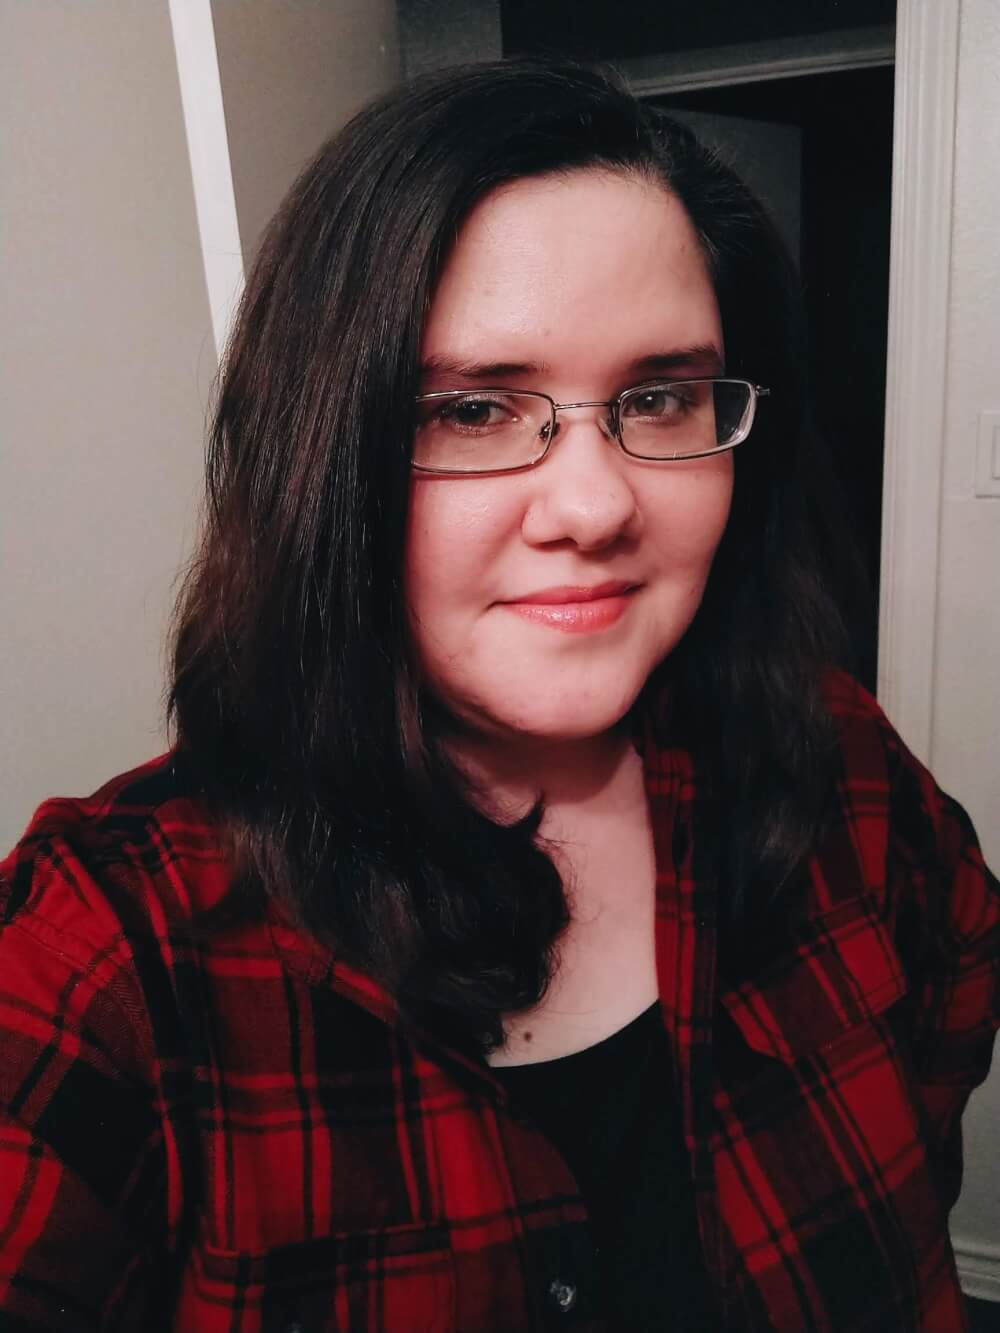 Selfie of me in glasses, a small smile, short hair, red plaid flannel